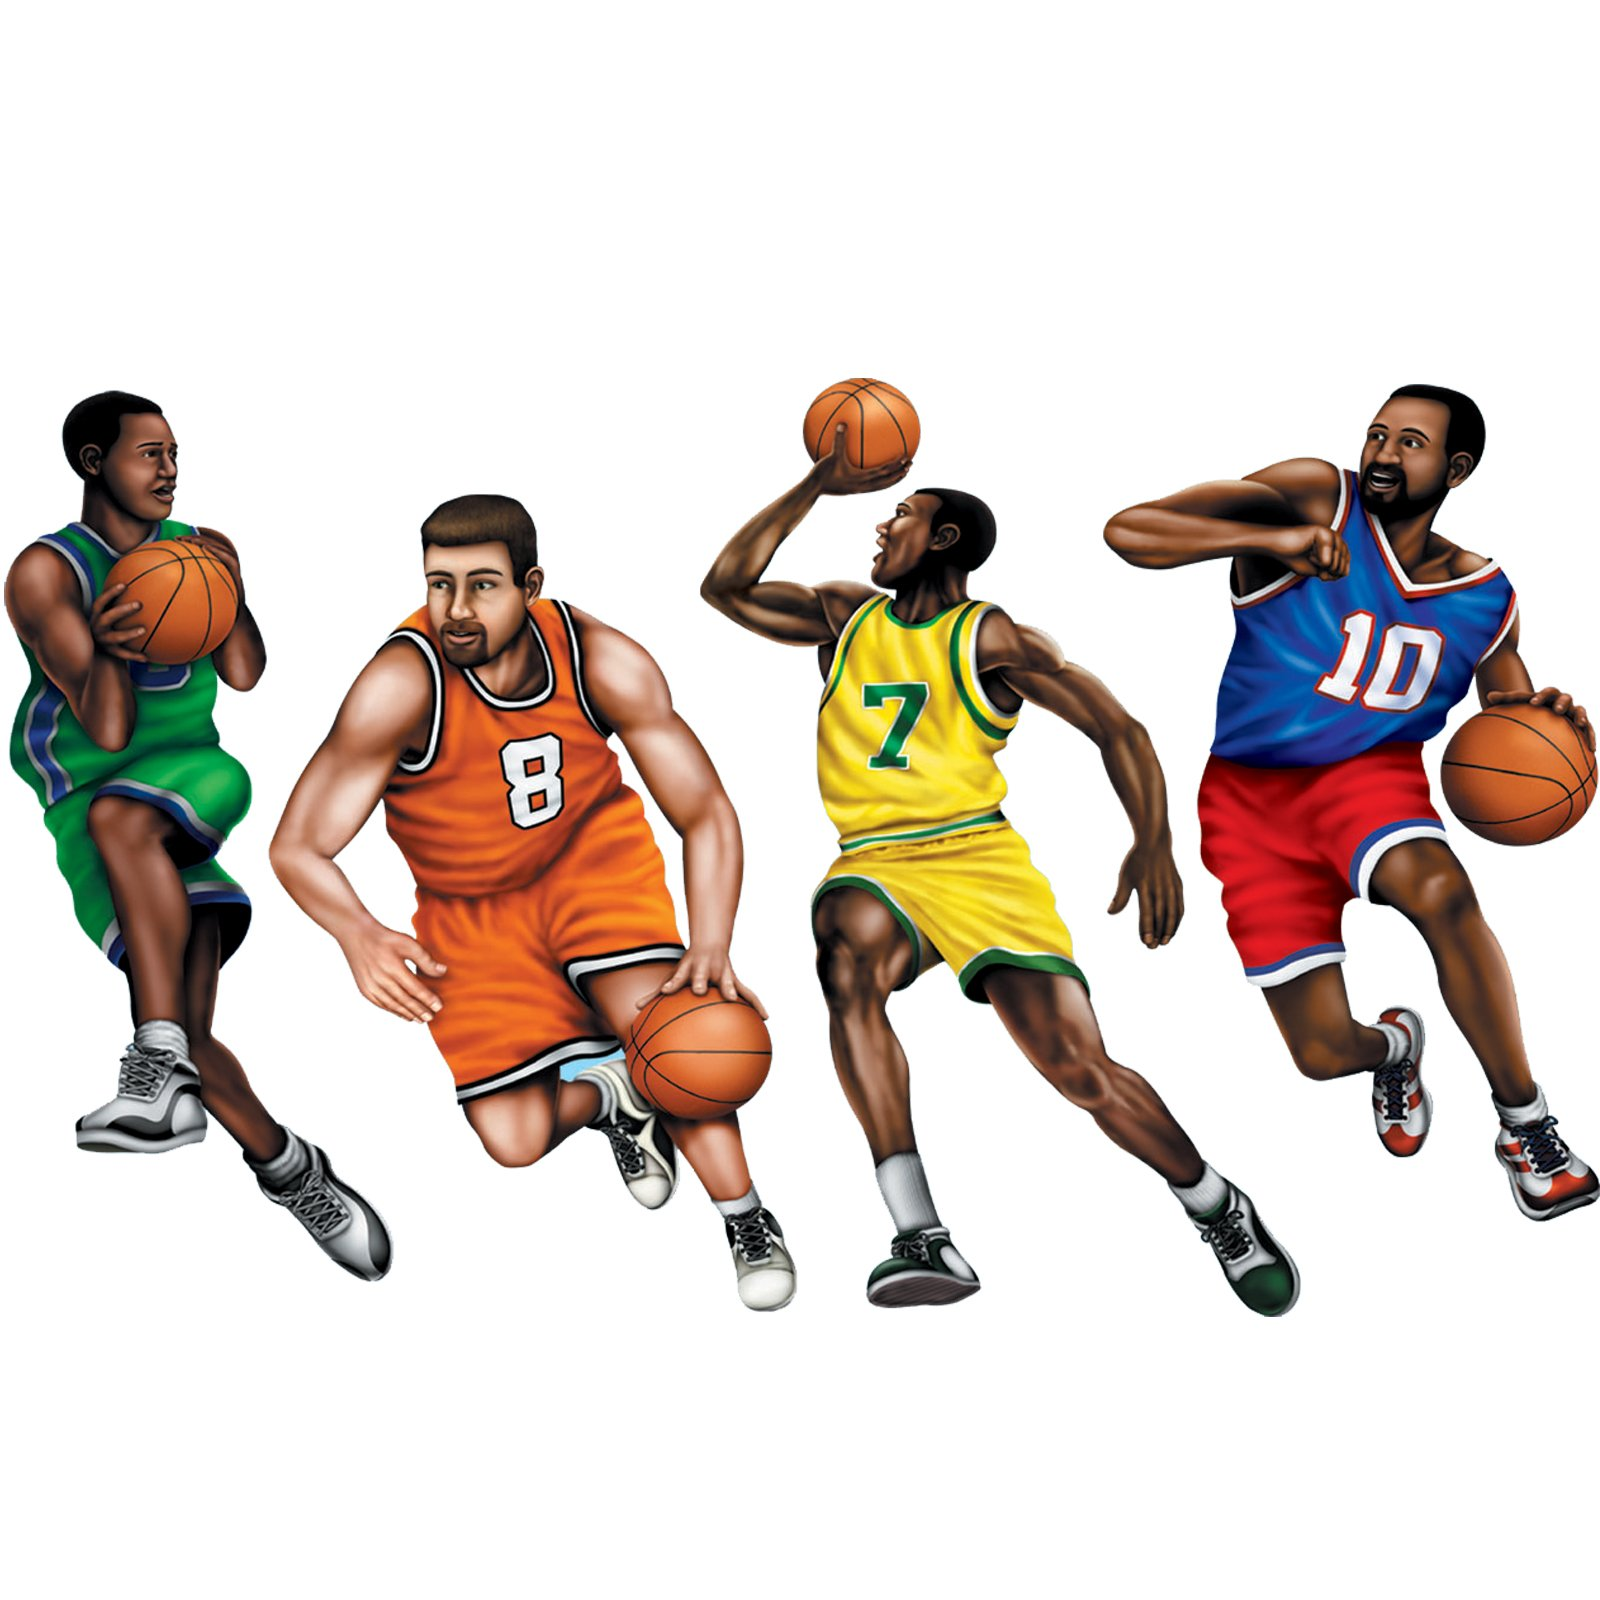 Athletic clipart player nba. Basketball players png hd